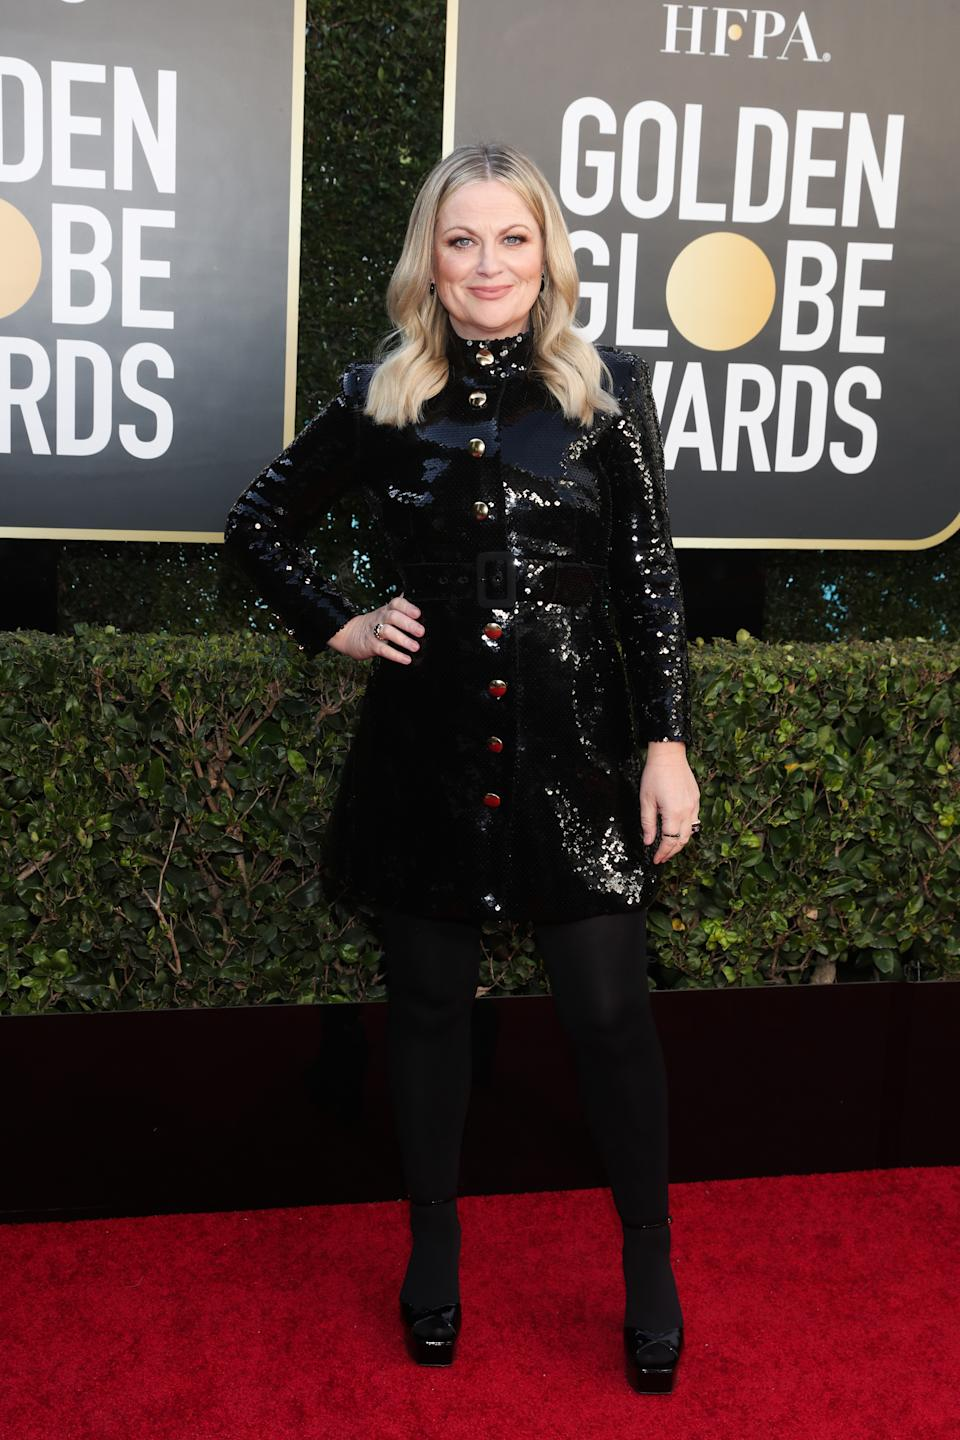 Co-host Amy Poehler attends the 78th Annual Golden Globe Awards held at The Beverly Hilton and broadcast on February 28, 2021 in Beverly Hills, California.